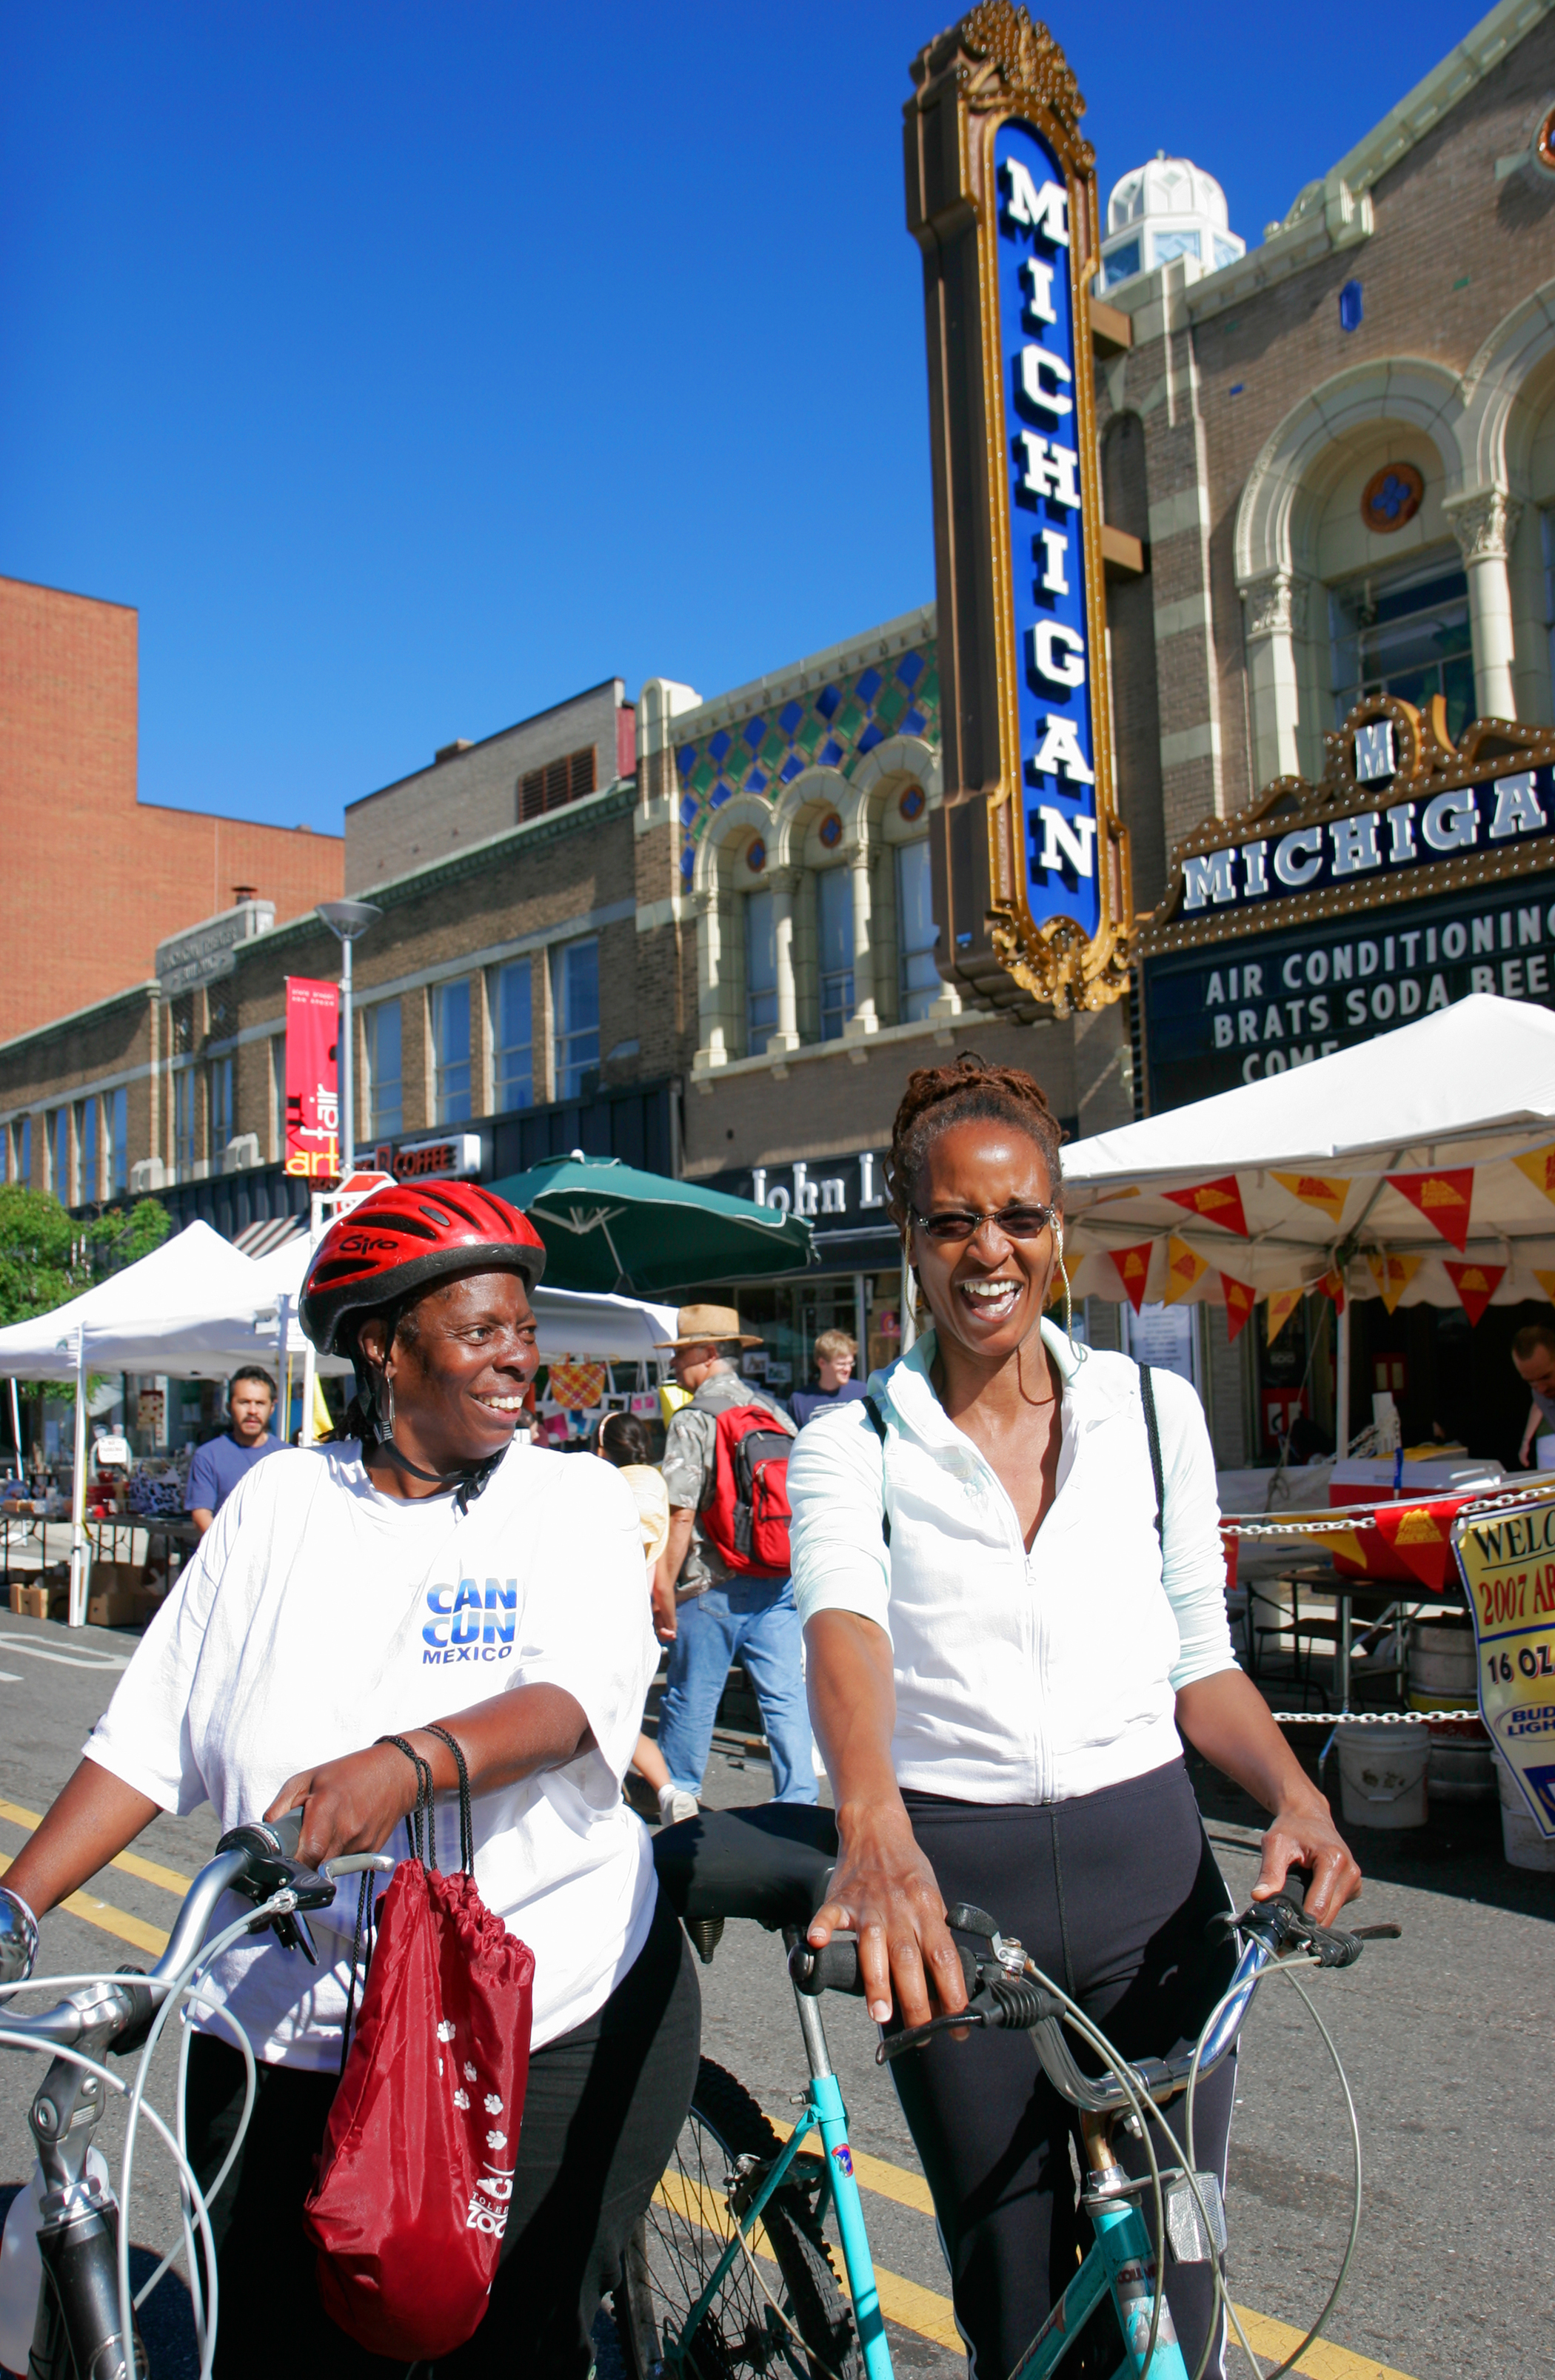 <strong>8. Ann Arbor, Mich.</strong>                                       <b>Population: </b>113,535 | <b>Percent Who Primarily Walk/Bike:</b> 16%